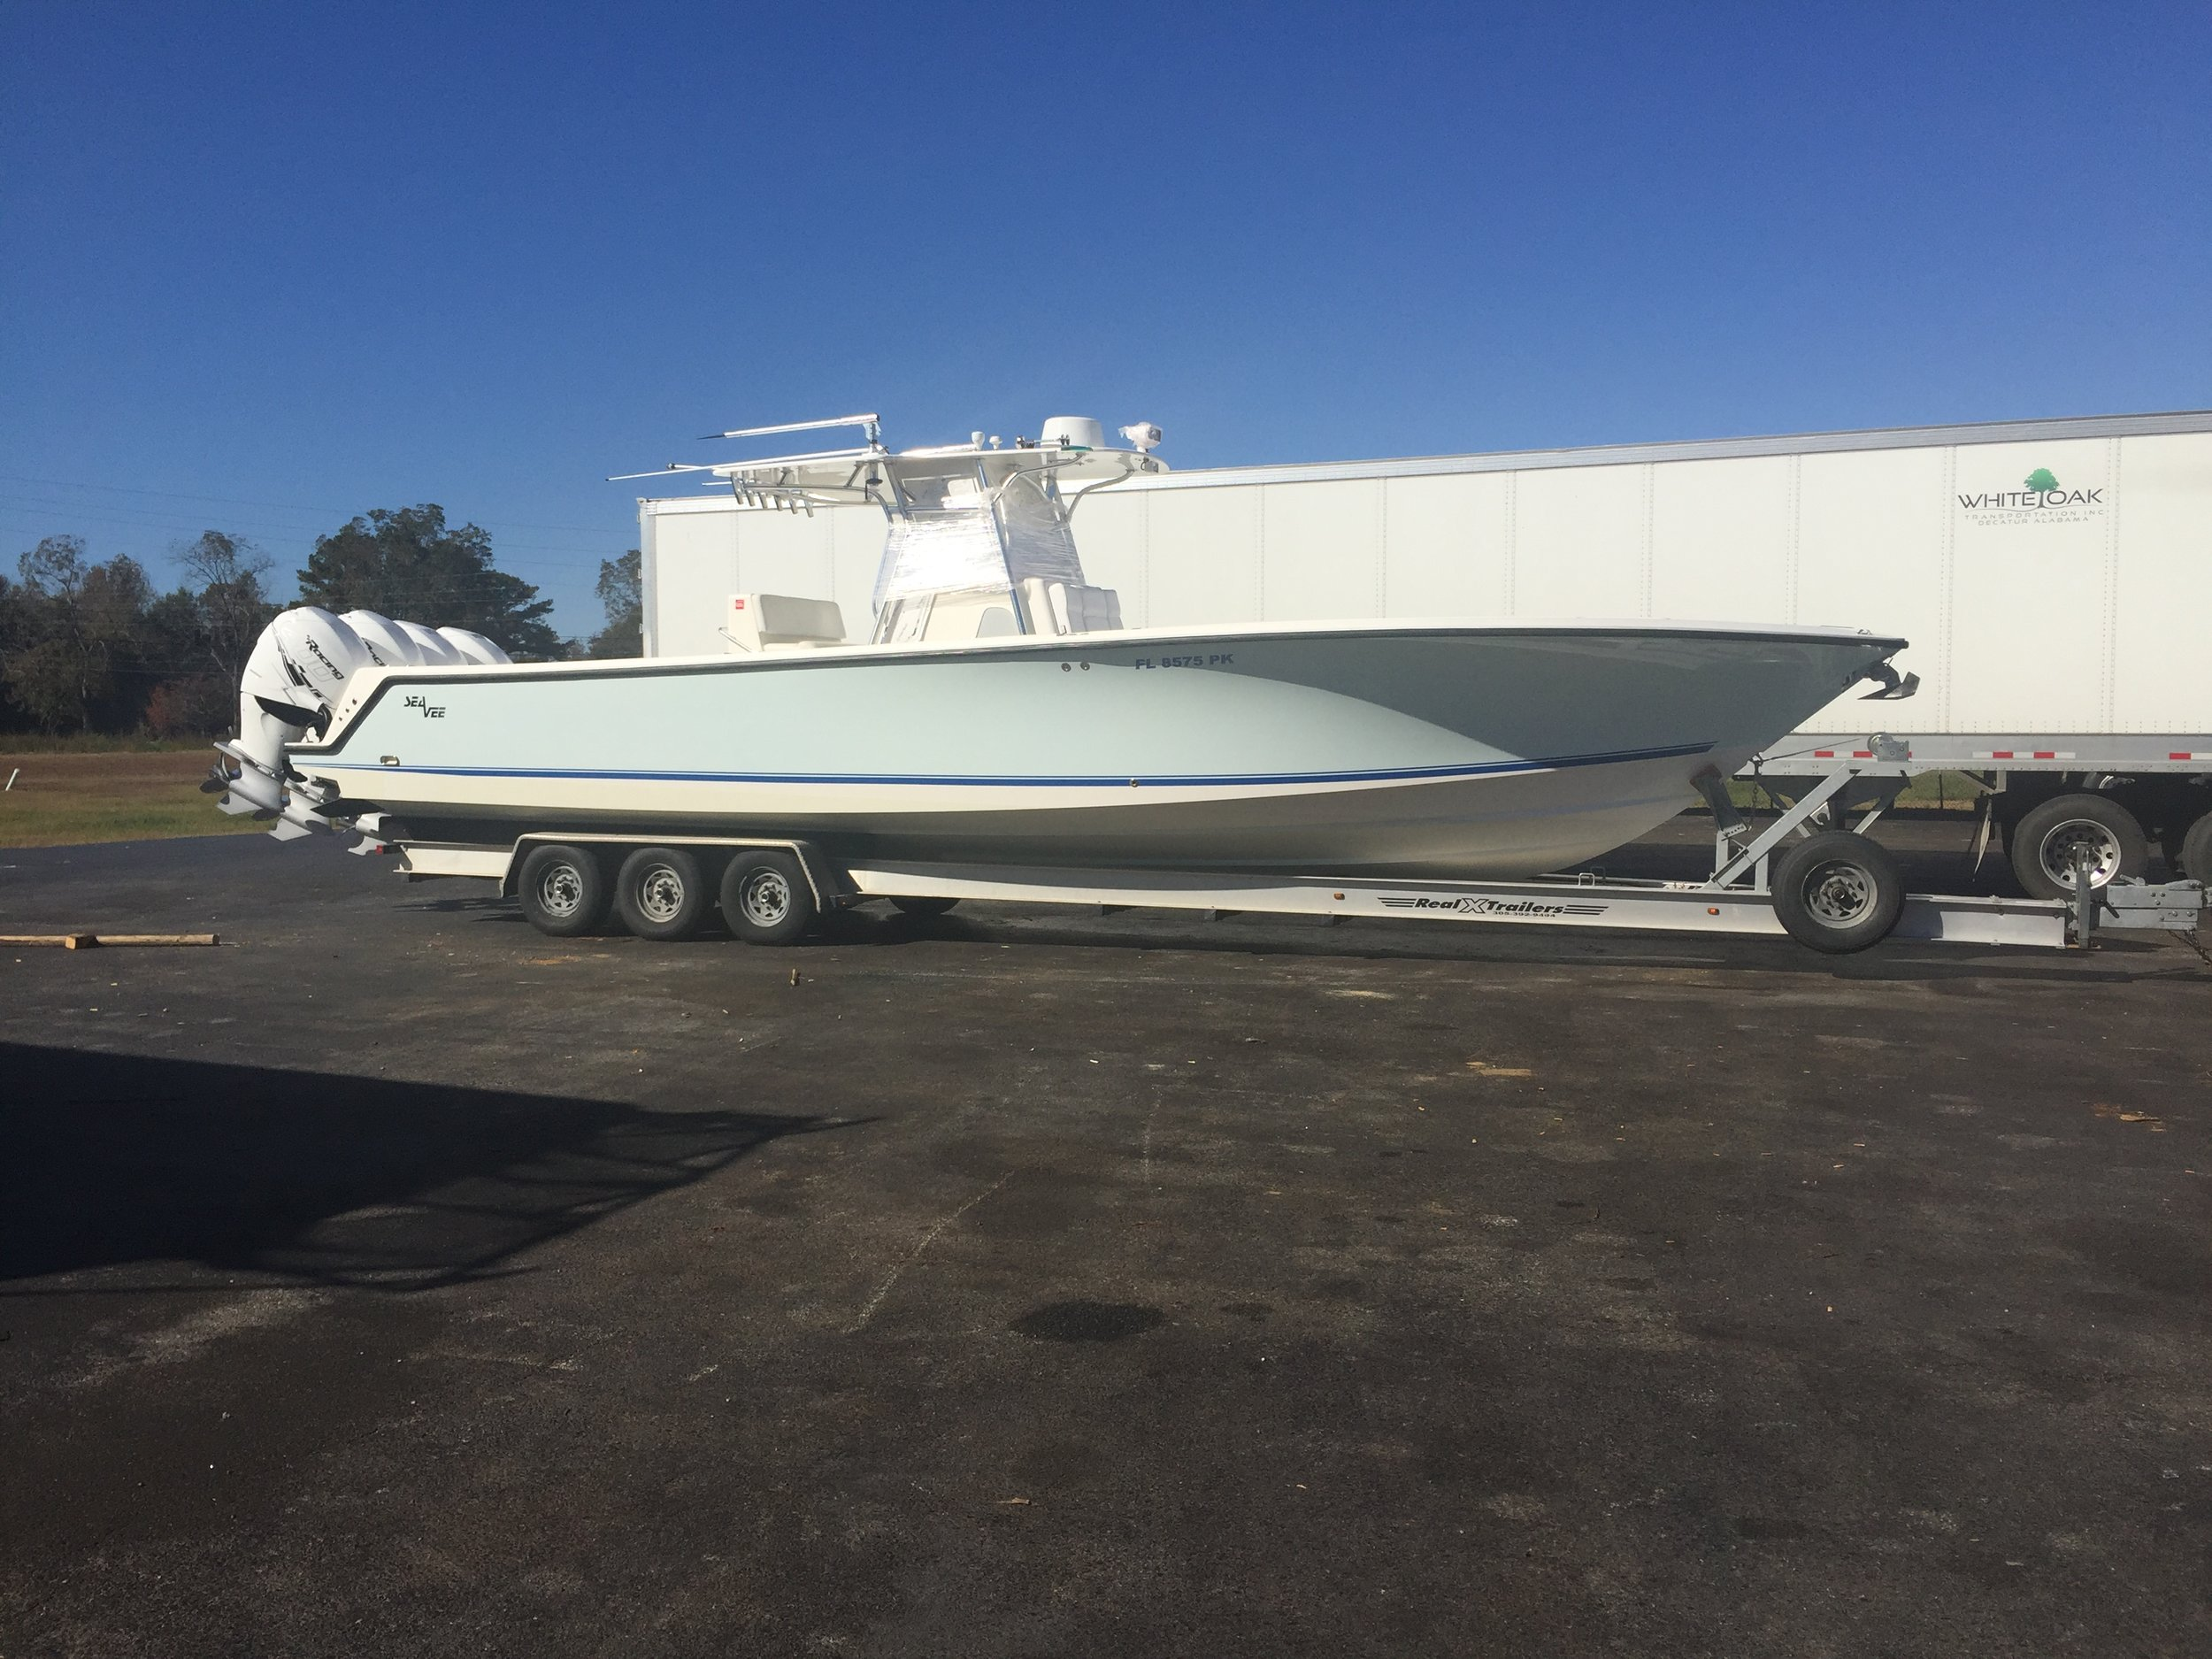 39 Sea Vee with quad Mercury 400 racing outboards